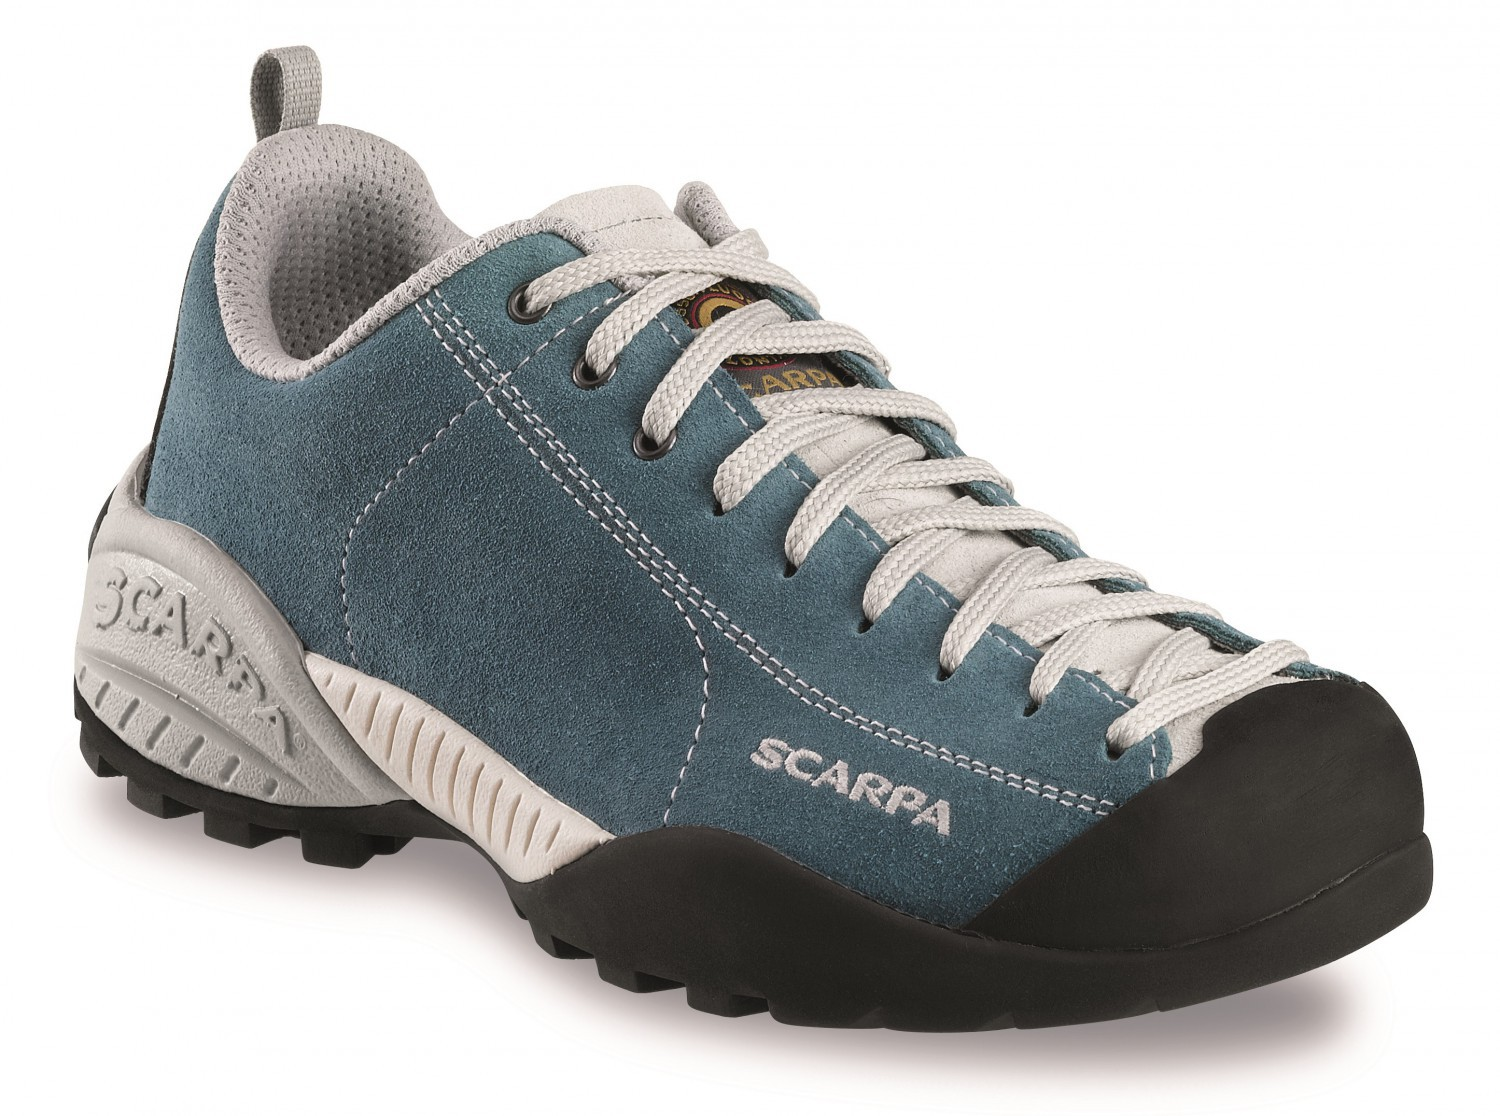 Scarpa - Mojito Polar Blue - Approach Shoes - 42